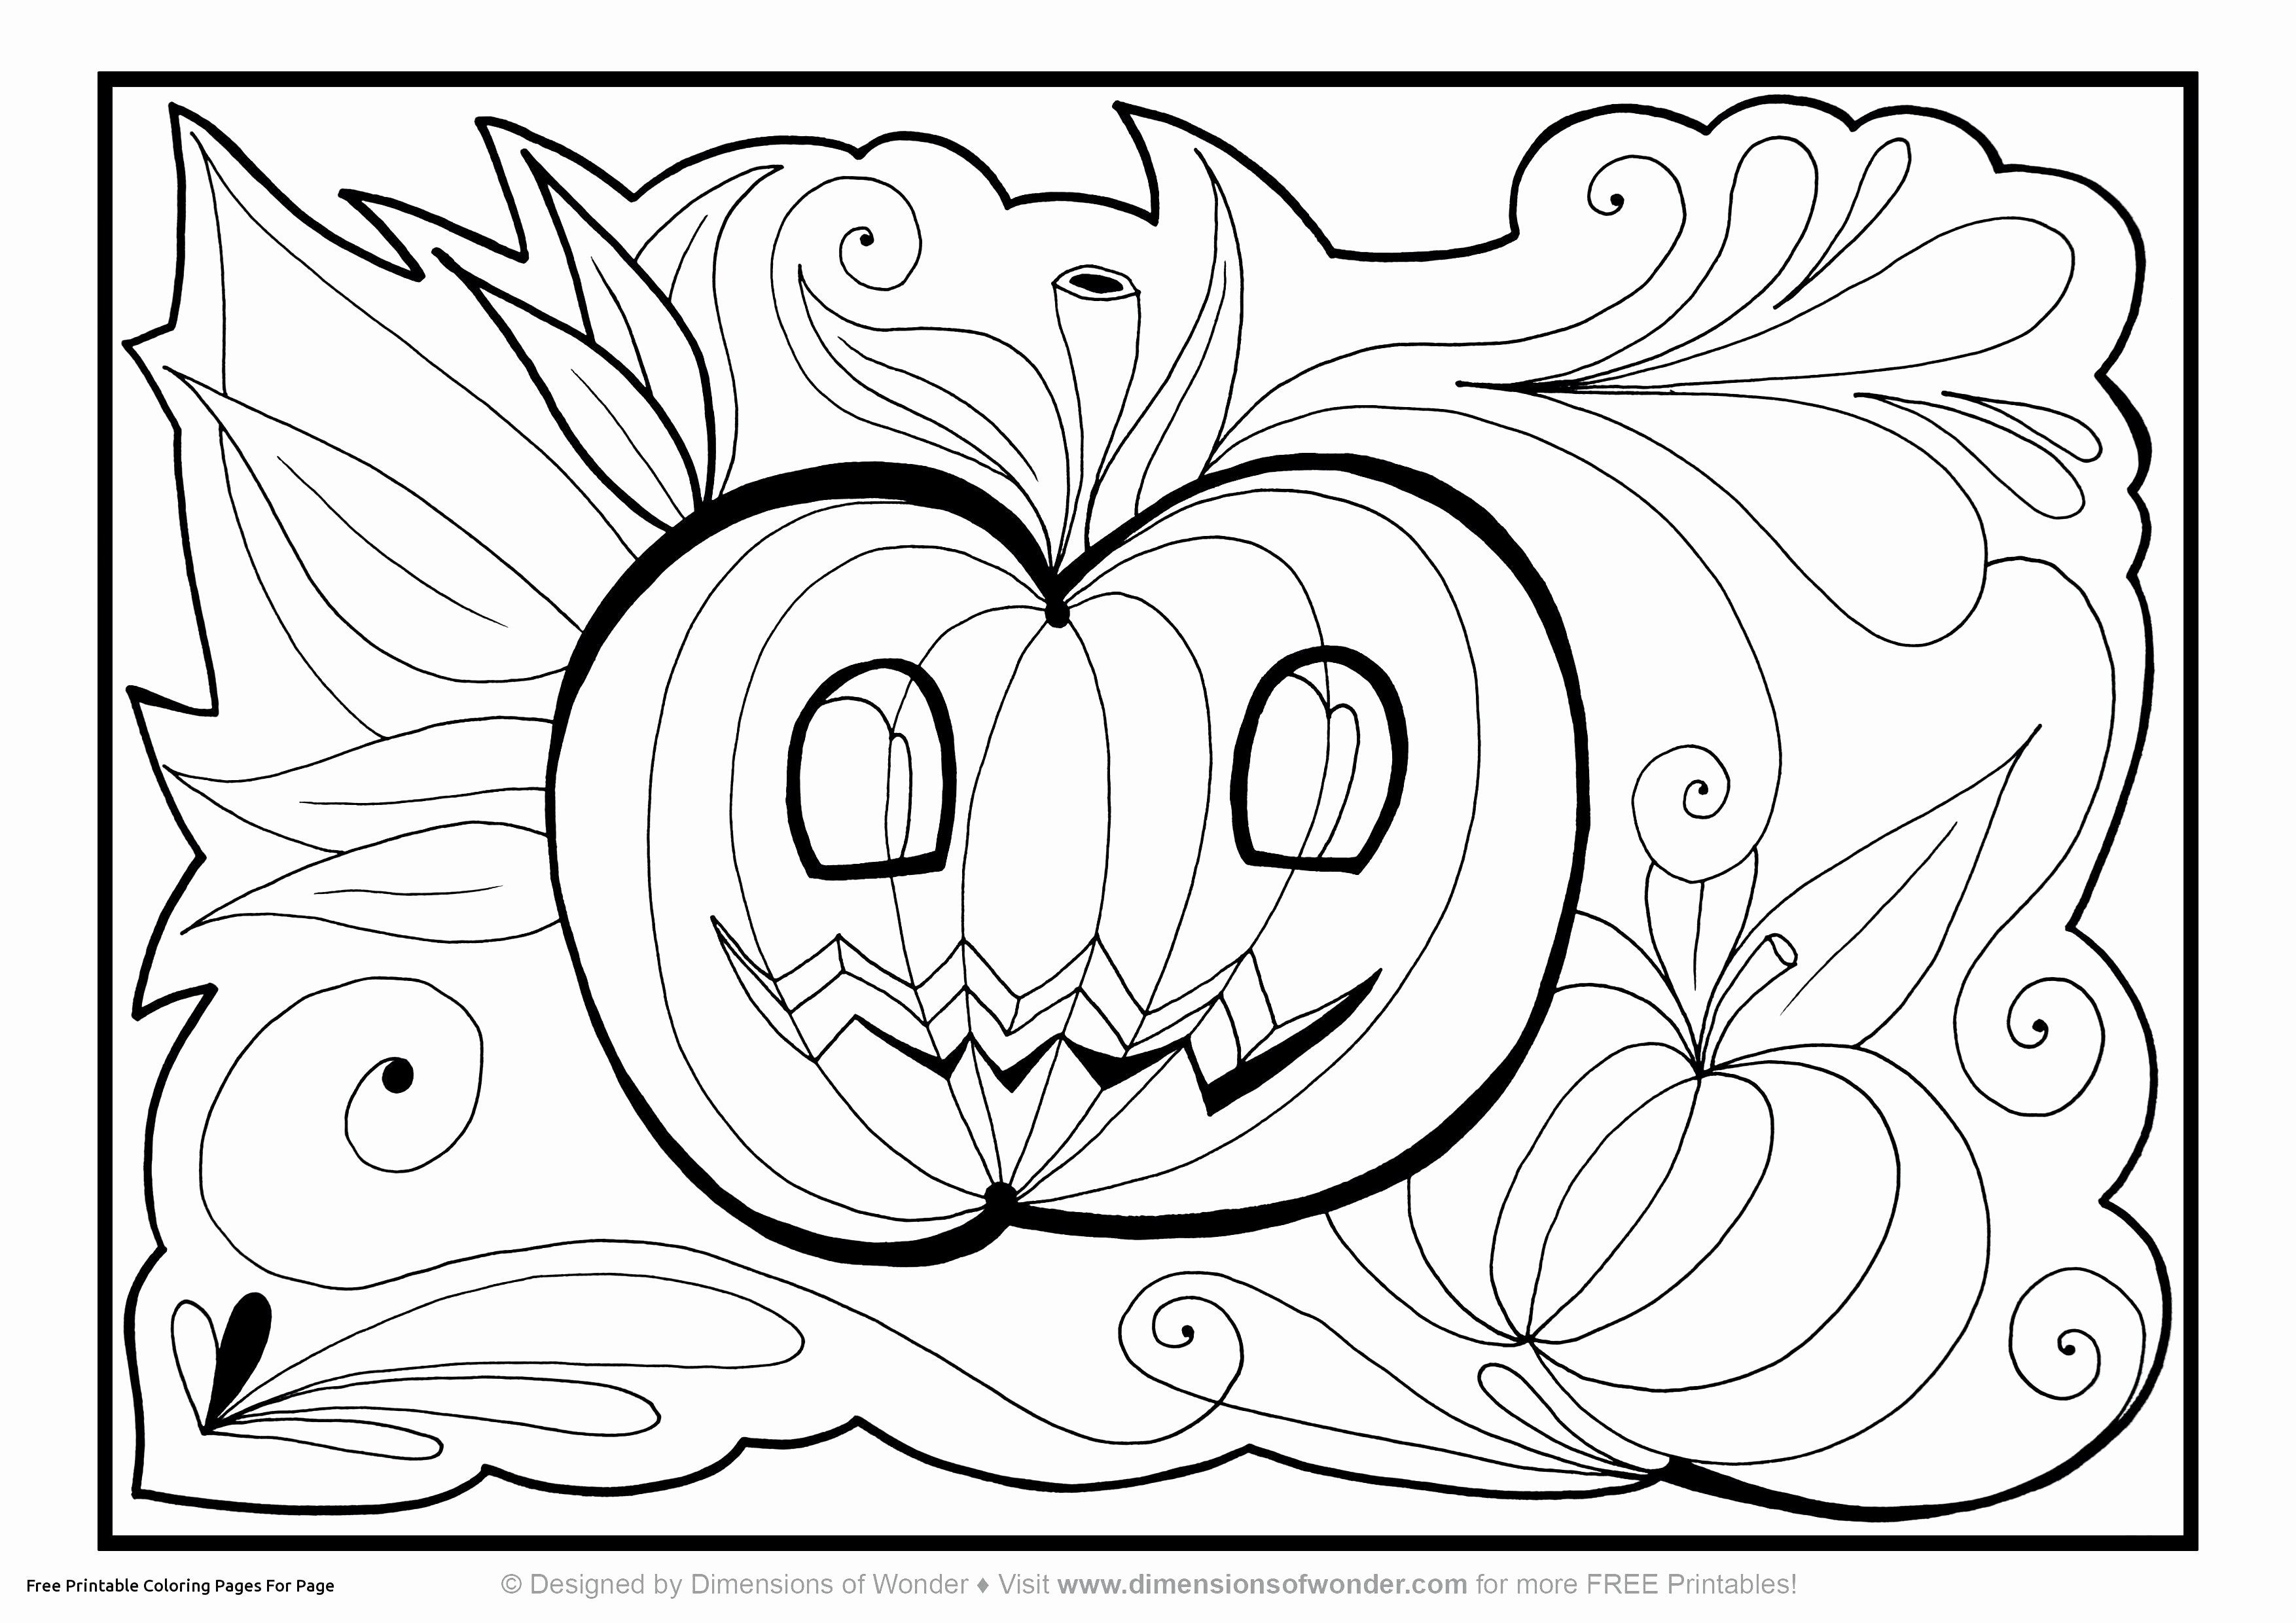 Water Coloring Activities Beautiful Beautiful Boy Watering Plants Coloring Pages Mardi Gras Template Art